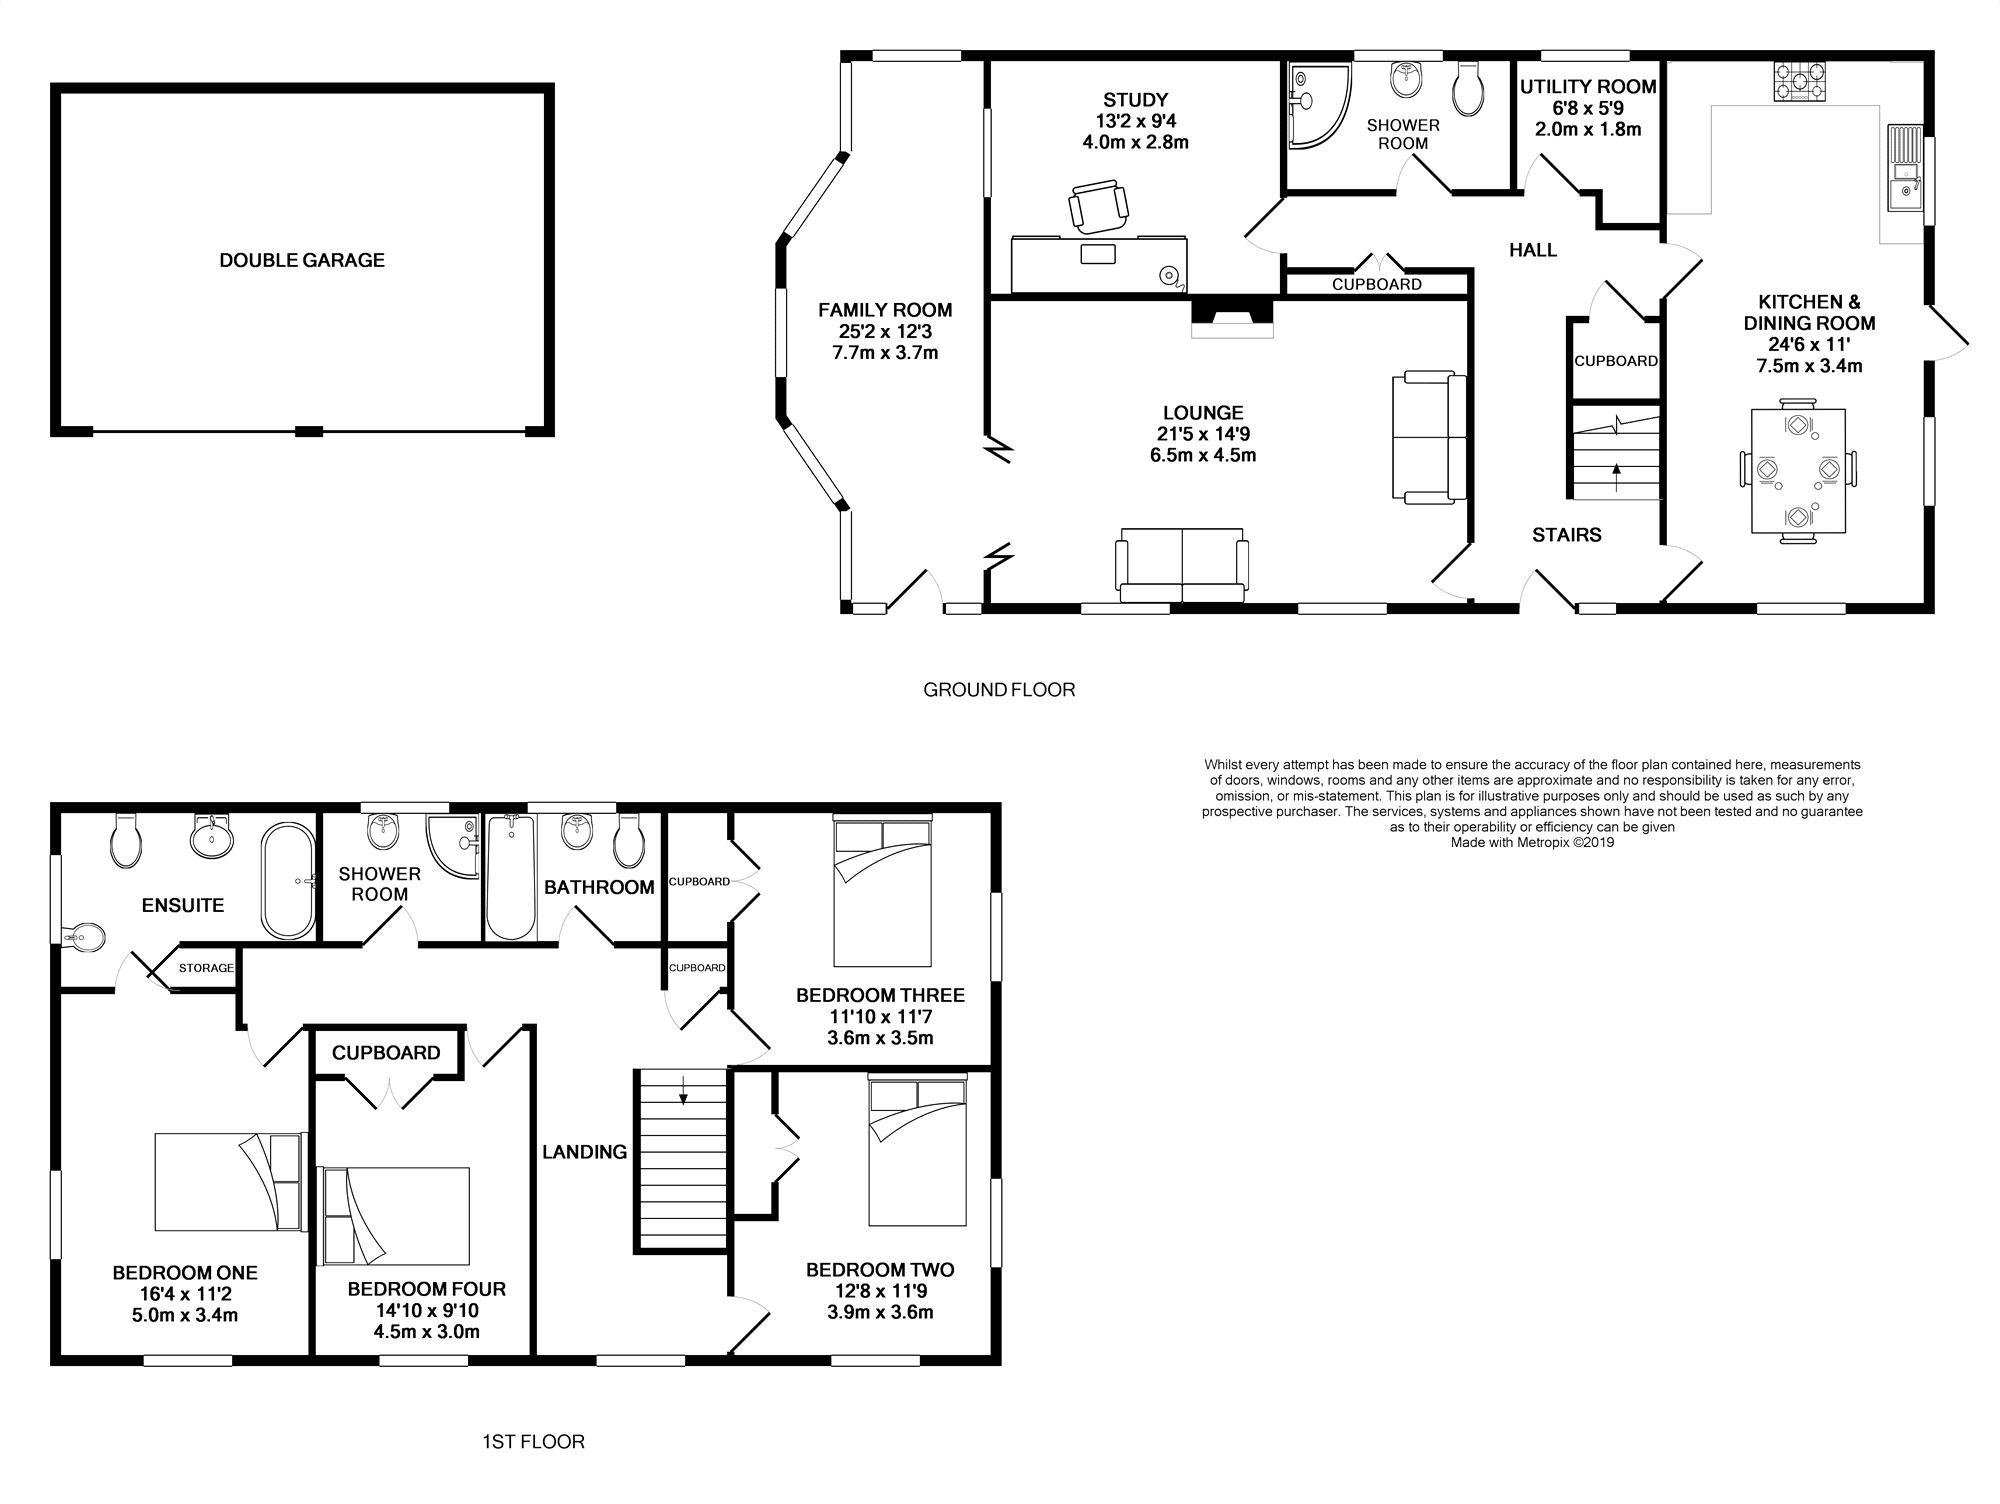 Floorplans For Purley on Thames, Reading, Berkshire